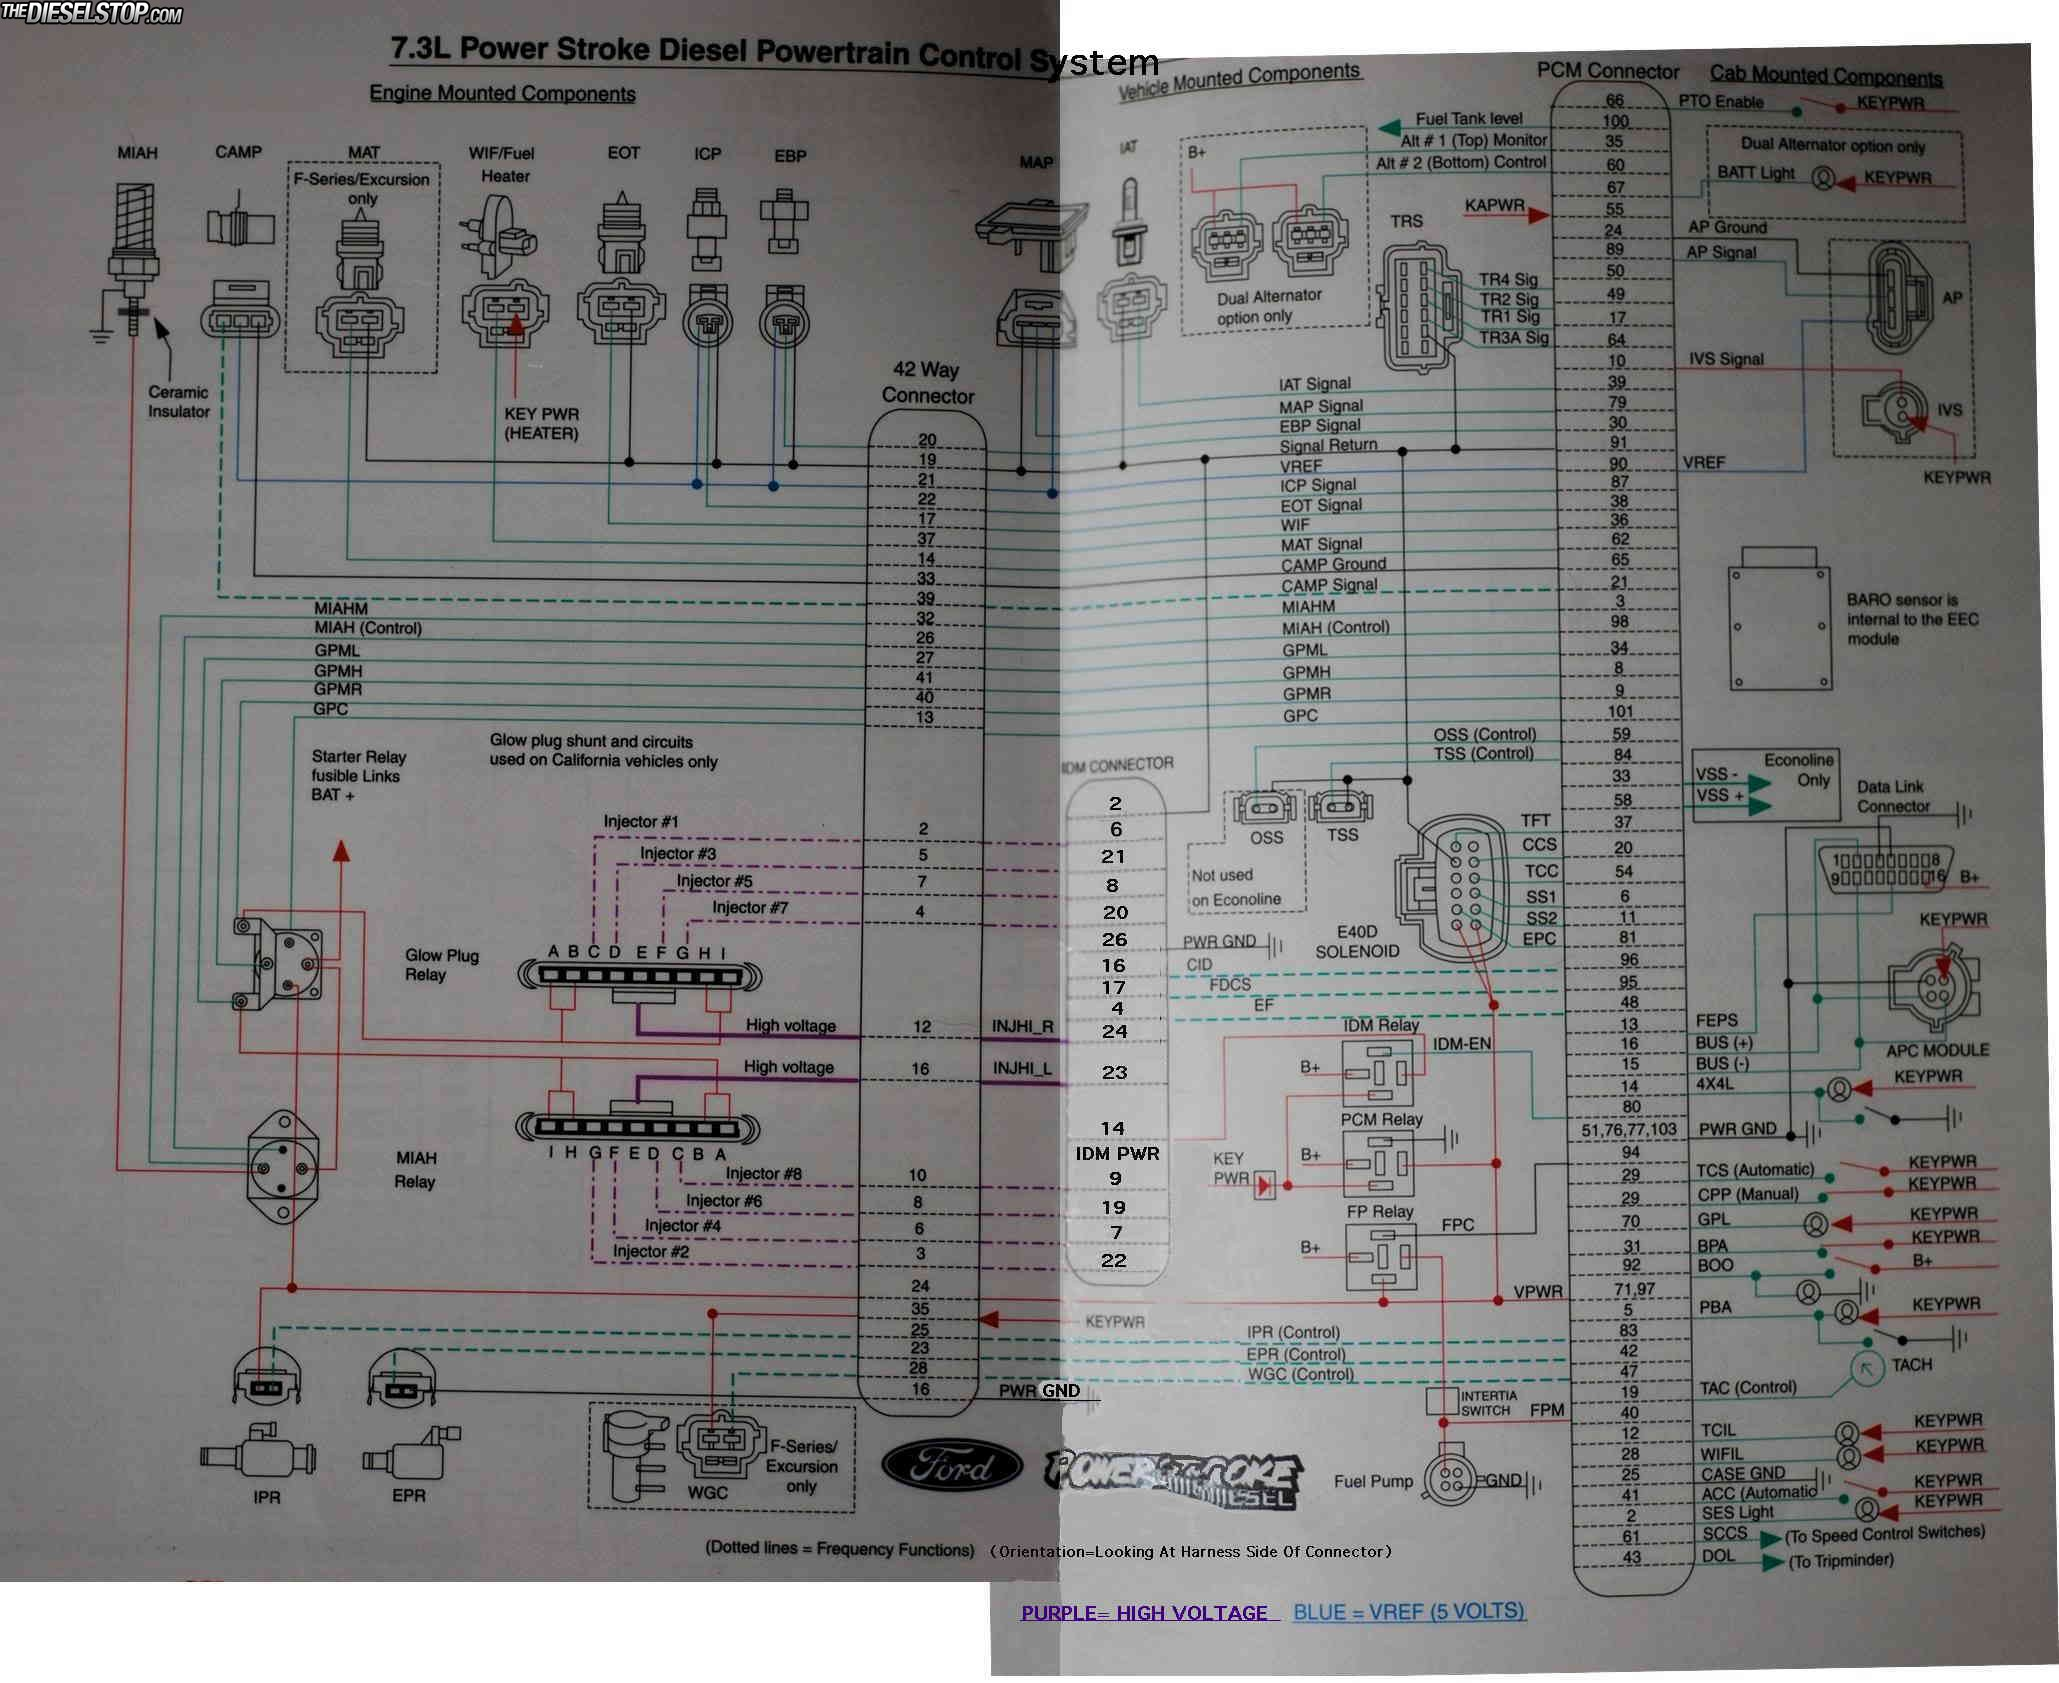 2000 Ford E 450 Wiring Diagram Opinions About E350 Diagrams Ran My 03 Psd At The Dragstrip Tonight Page 2 Diesel Forum Thedieselstop Com Ignition 99 Econoline